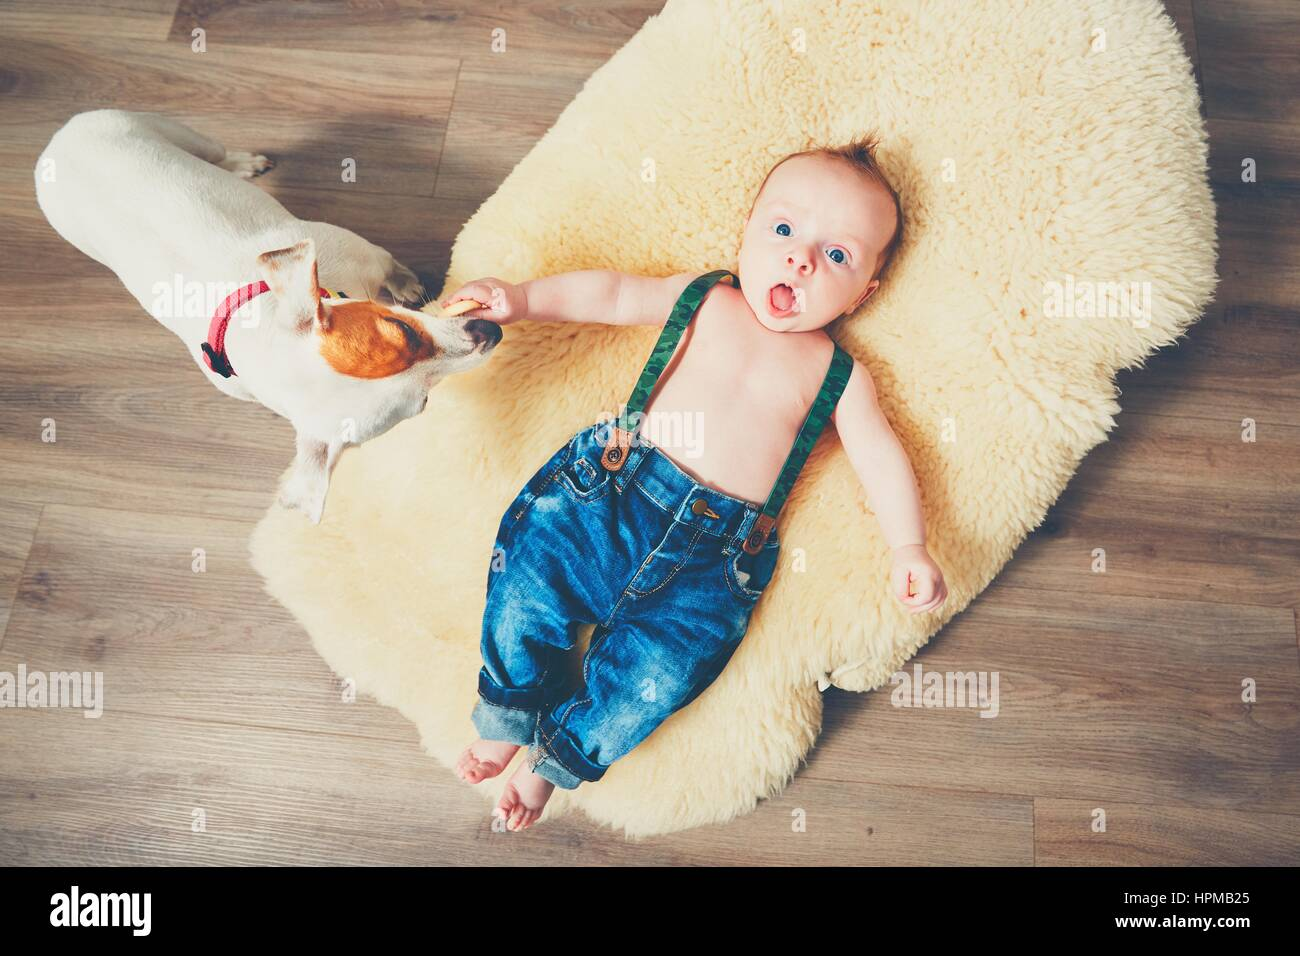 Little boy and dog at home. Adorable baby resting on the fur blanket. Stock Photo